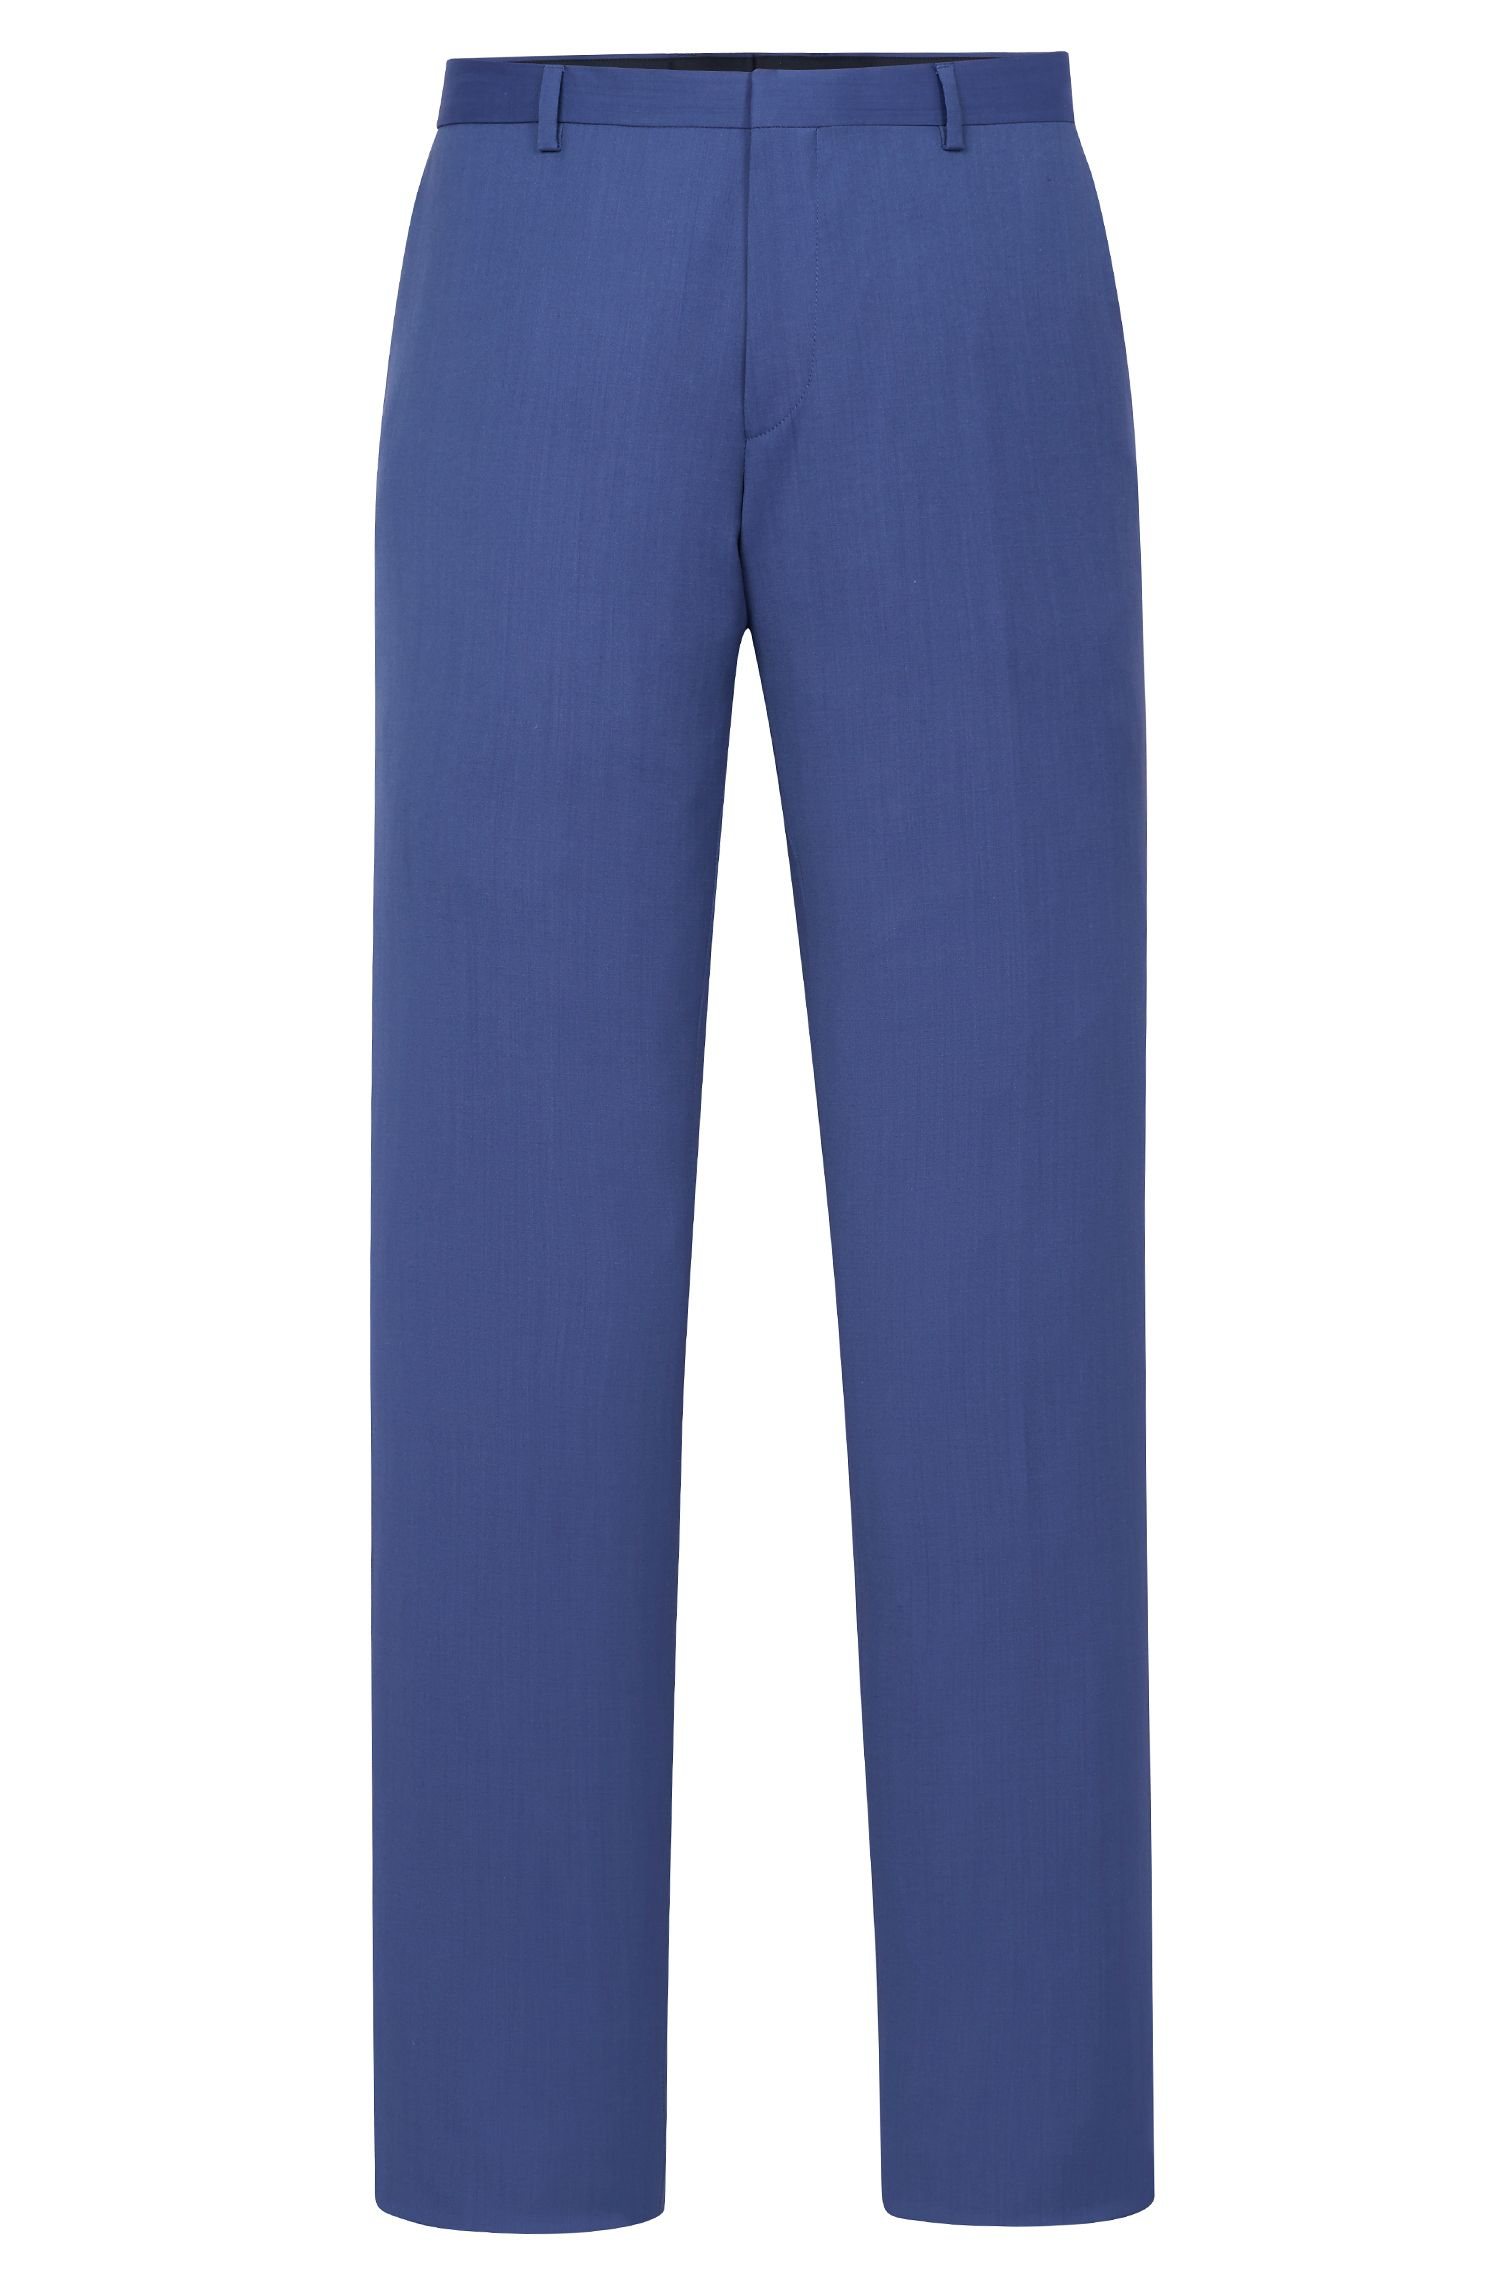 Italian Virgin Wool Dress Pant, Slim Fit | Genesis